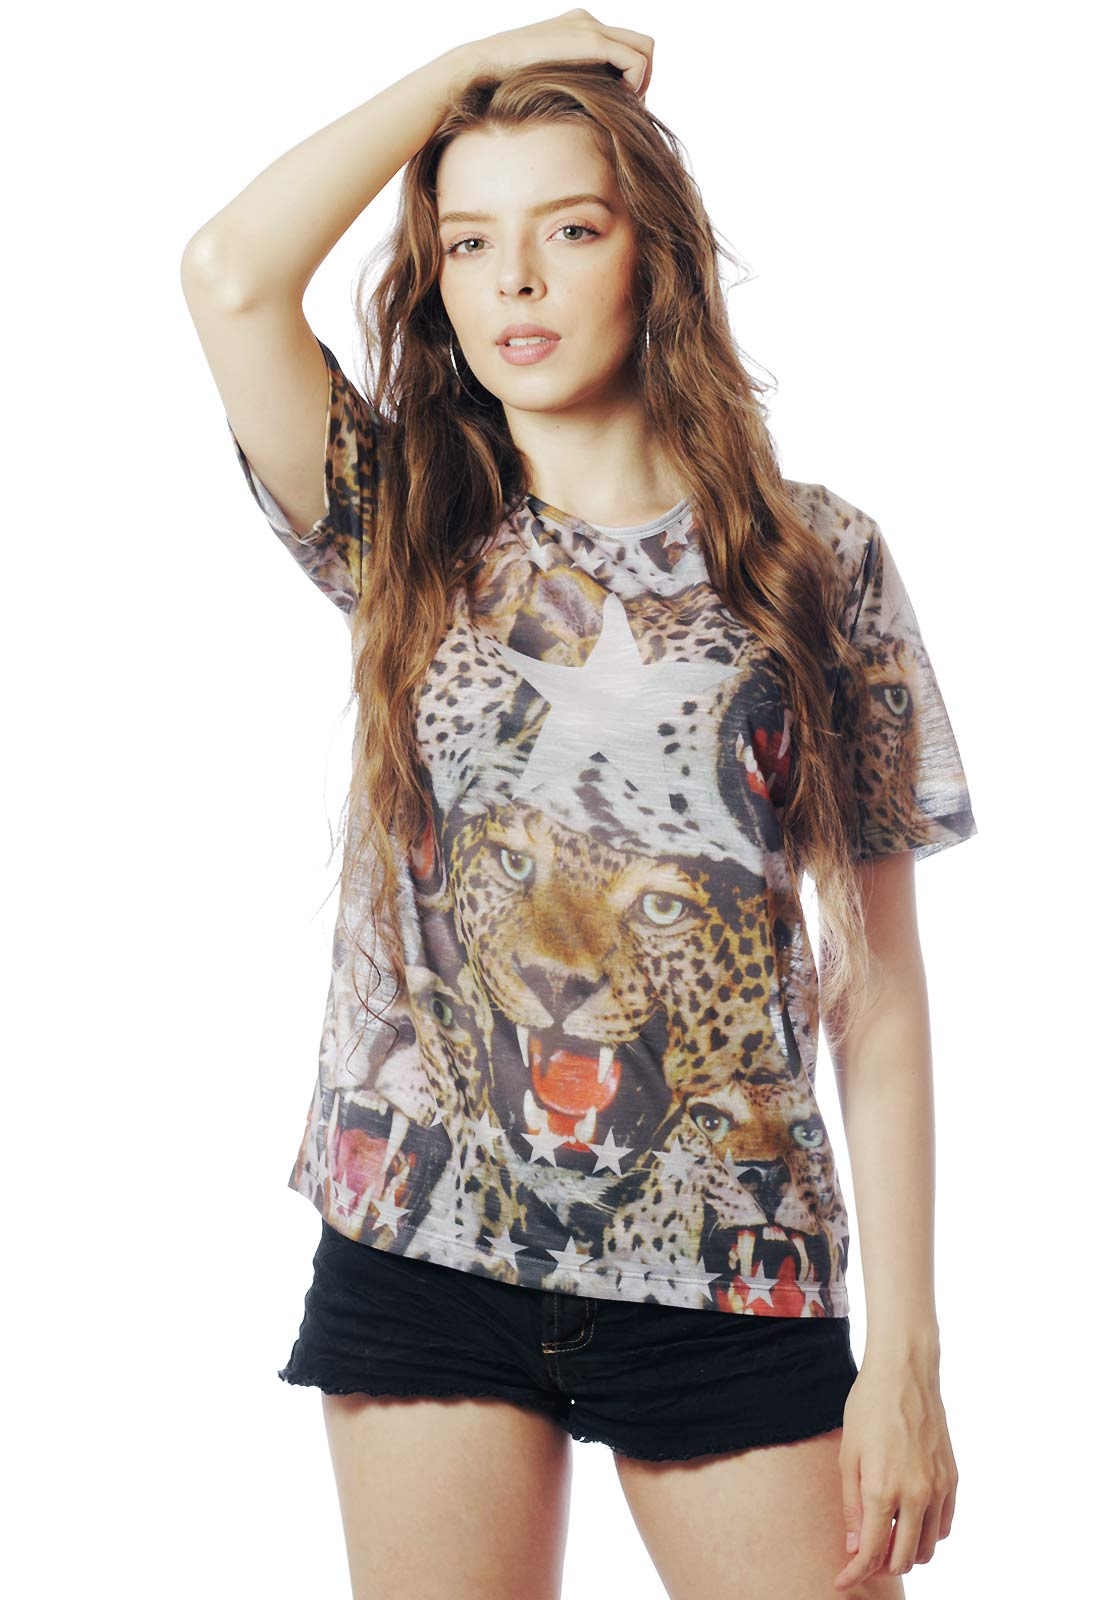 CAMISETA ANIMAL PRINT ONCINHA ESTAMPADA FULL PRINT FA$HION POWER MARROM